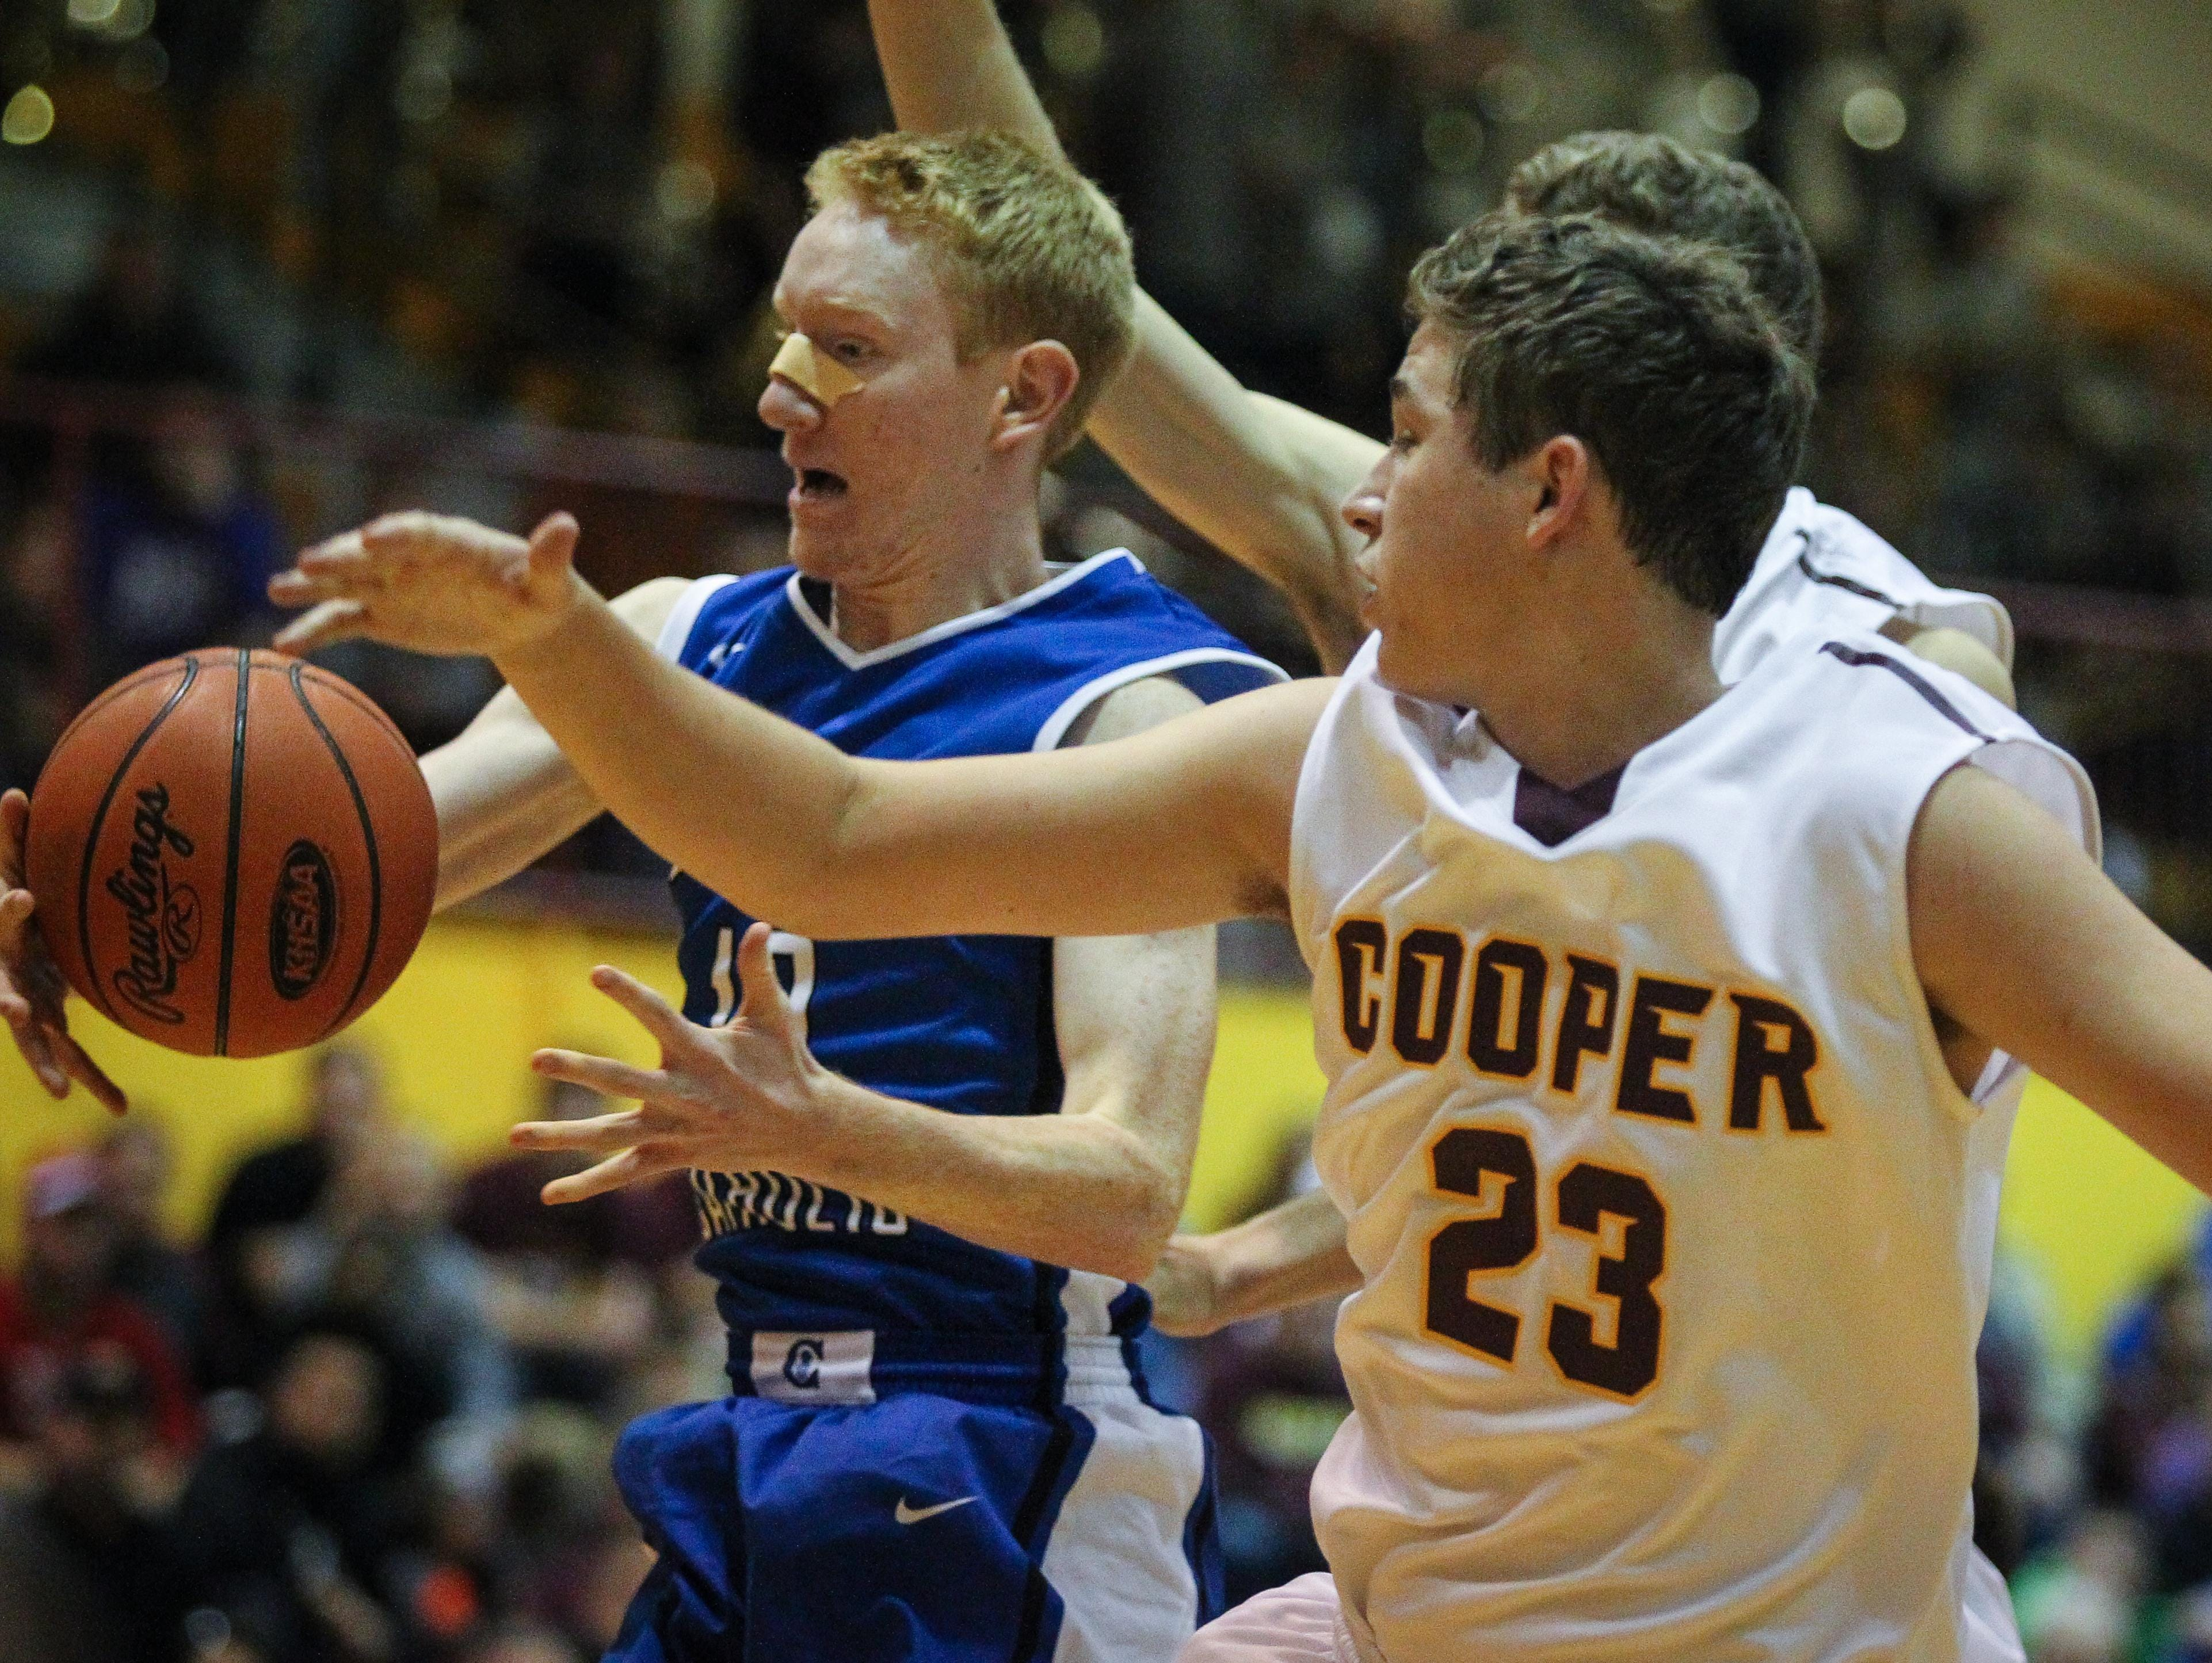 Covington Catholic's Ryan Massie rebounds a missed free throw in front of Cooper's Trevor Rohlman during the first half of their game Wednesday.